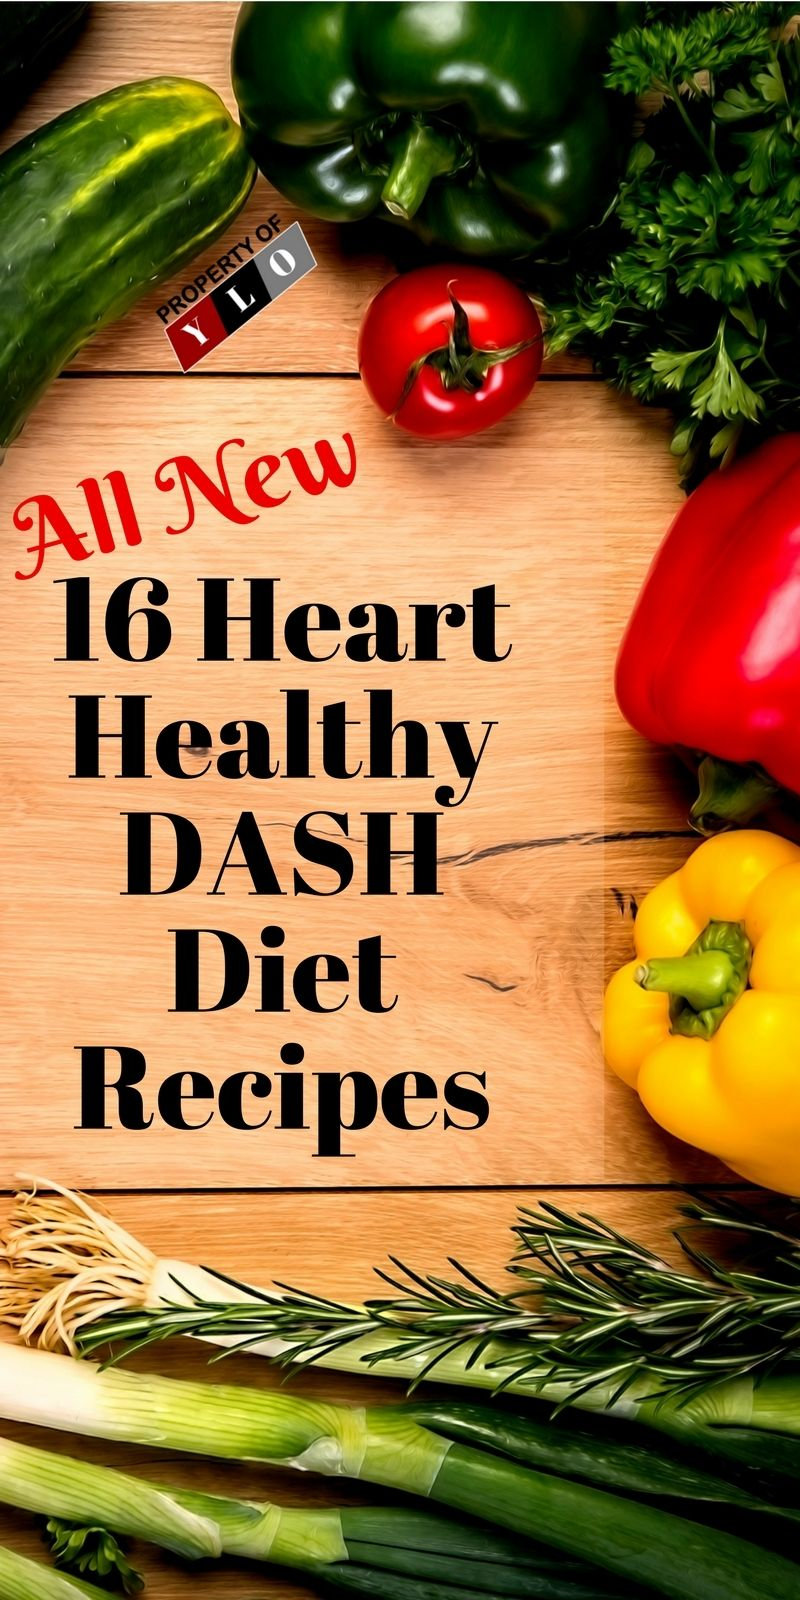 Top 16 dash diet recipes to lose weight dietas muchas y salud top 16 dash diet recipes to lose weight your lifestyle options forumfinder Image collections